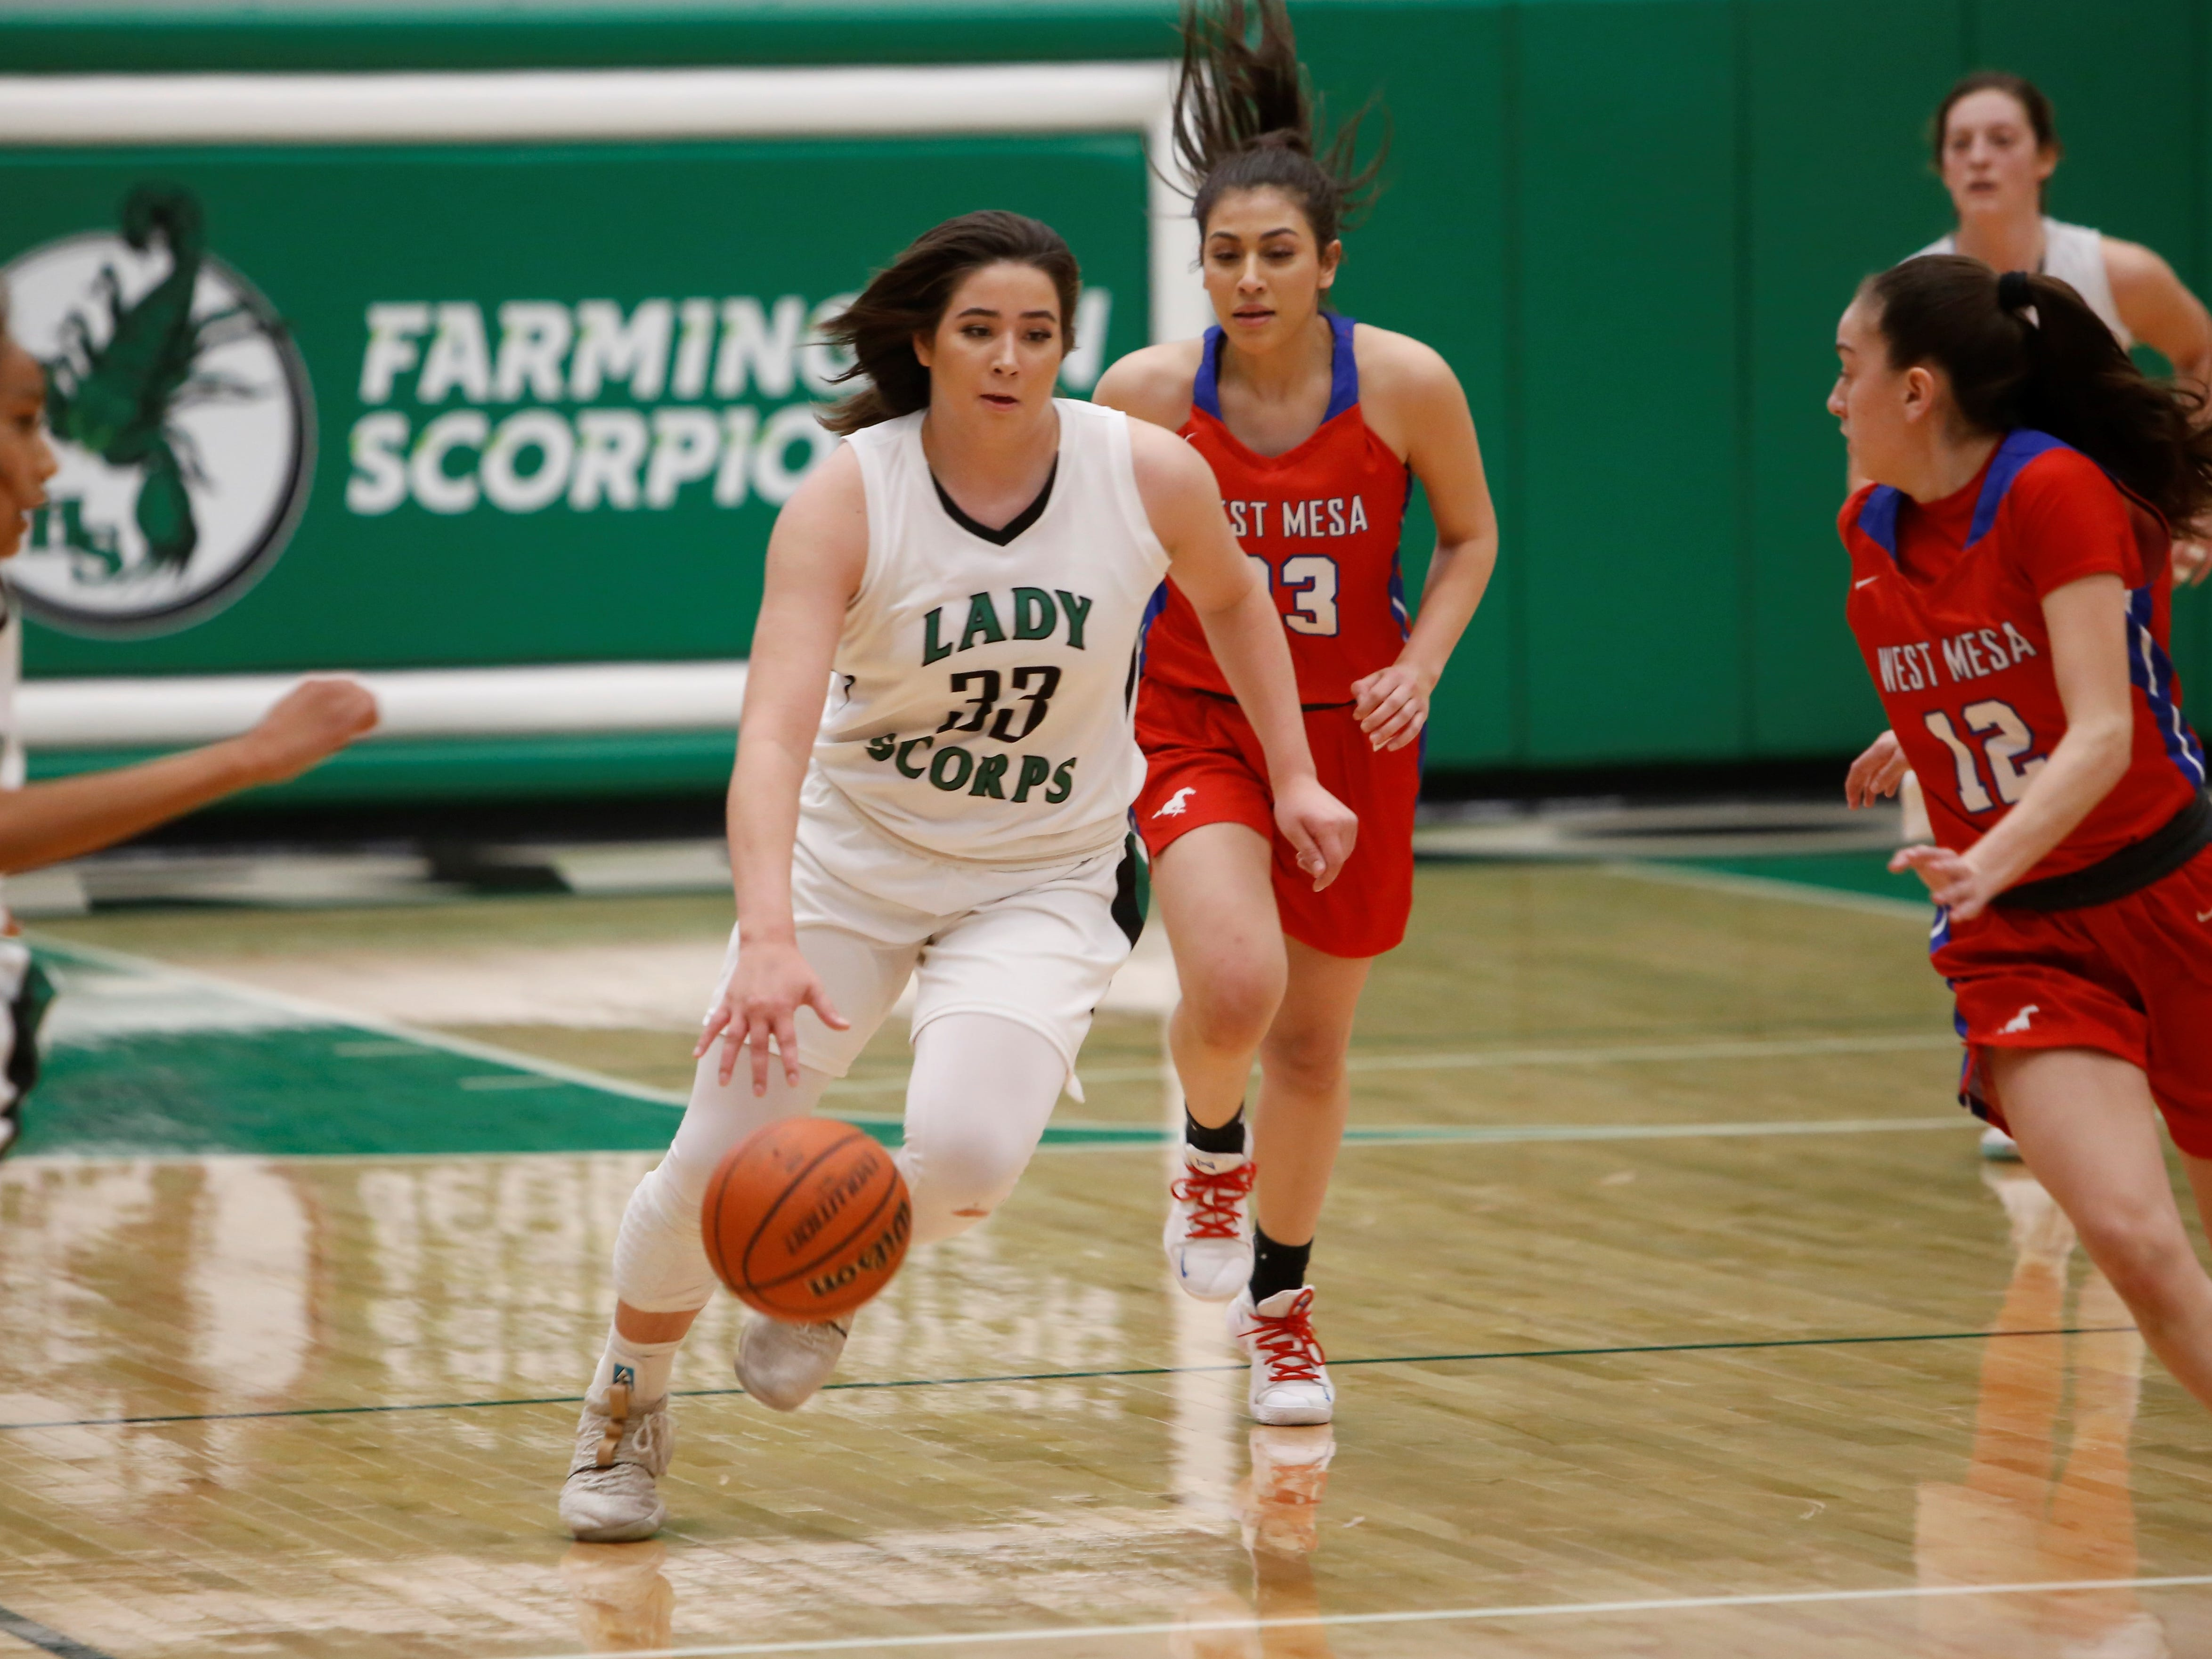 Farmington's Chloe Finch drives down the floor in transition against West Mesa's Jaden Castellano (23) and Maiah Rivas (12) during Tuesday's District 2-5A game at Scorpion Arena in Farmington.